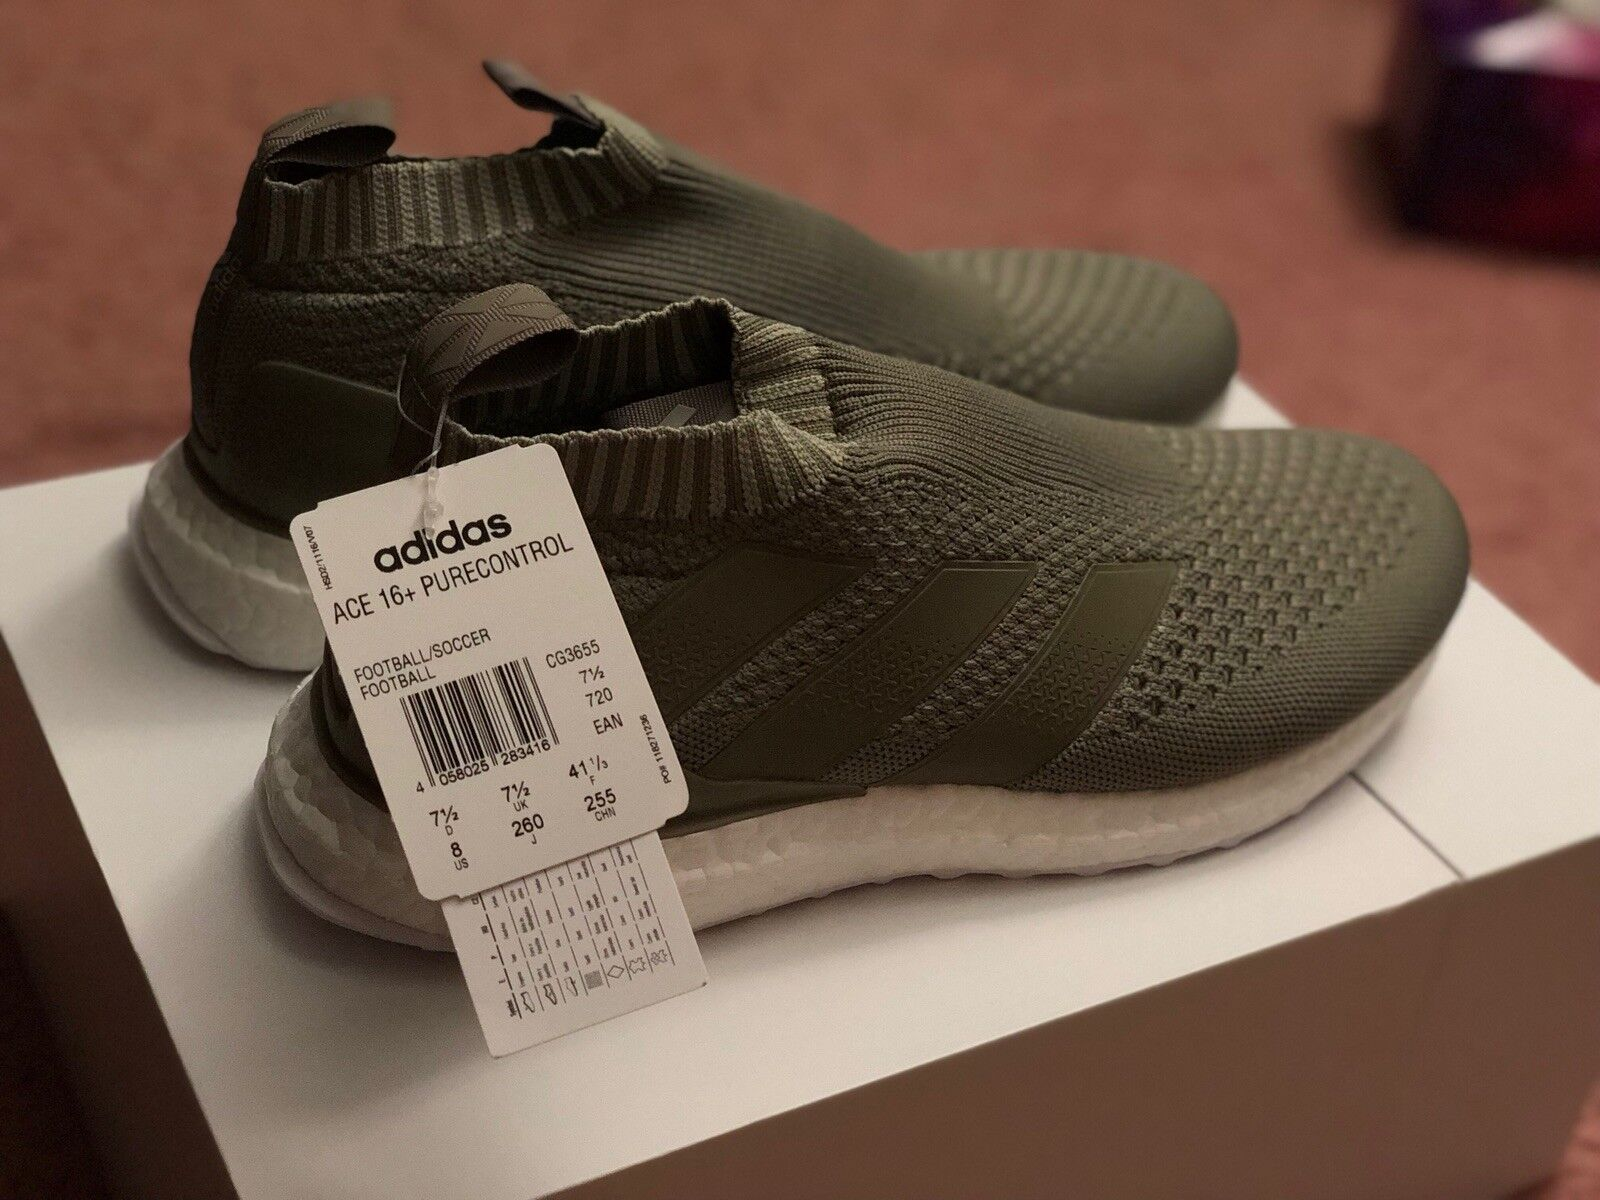 Adidas asso impulso 16 + purecontrol ultra impulso asso clay olive cg3655 sz 9,5 in mano b60901